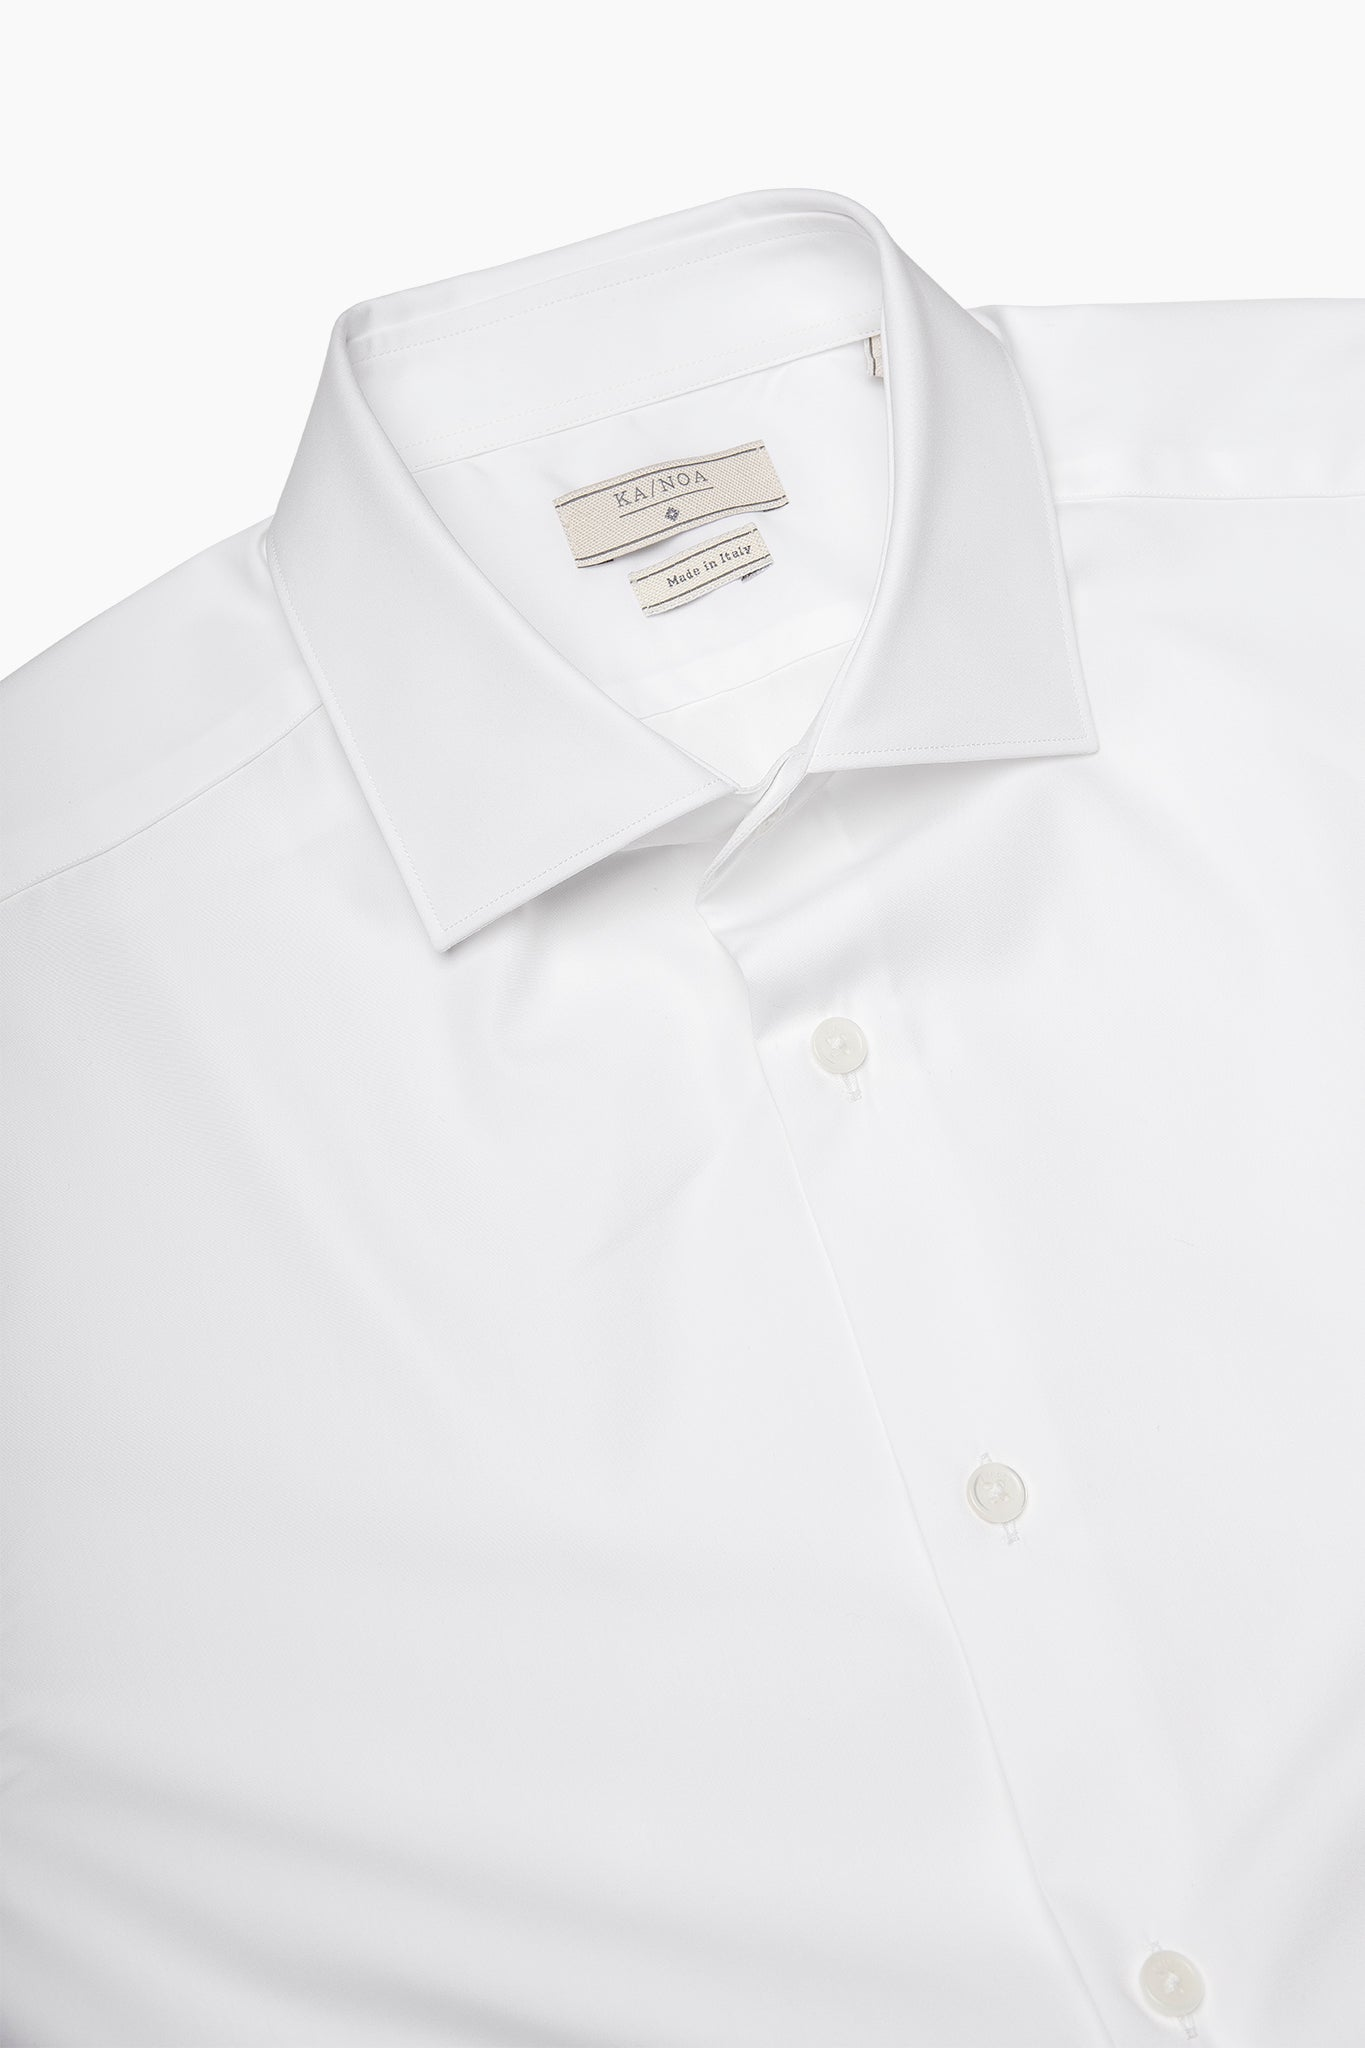 Clamenc All day long-sleeved shirt in Journey (ice white)